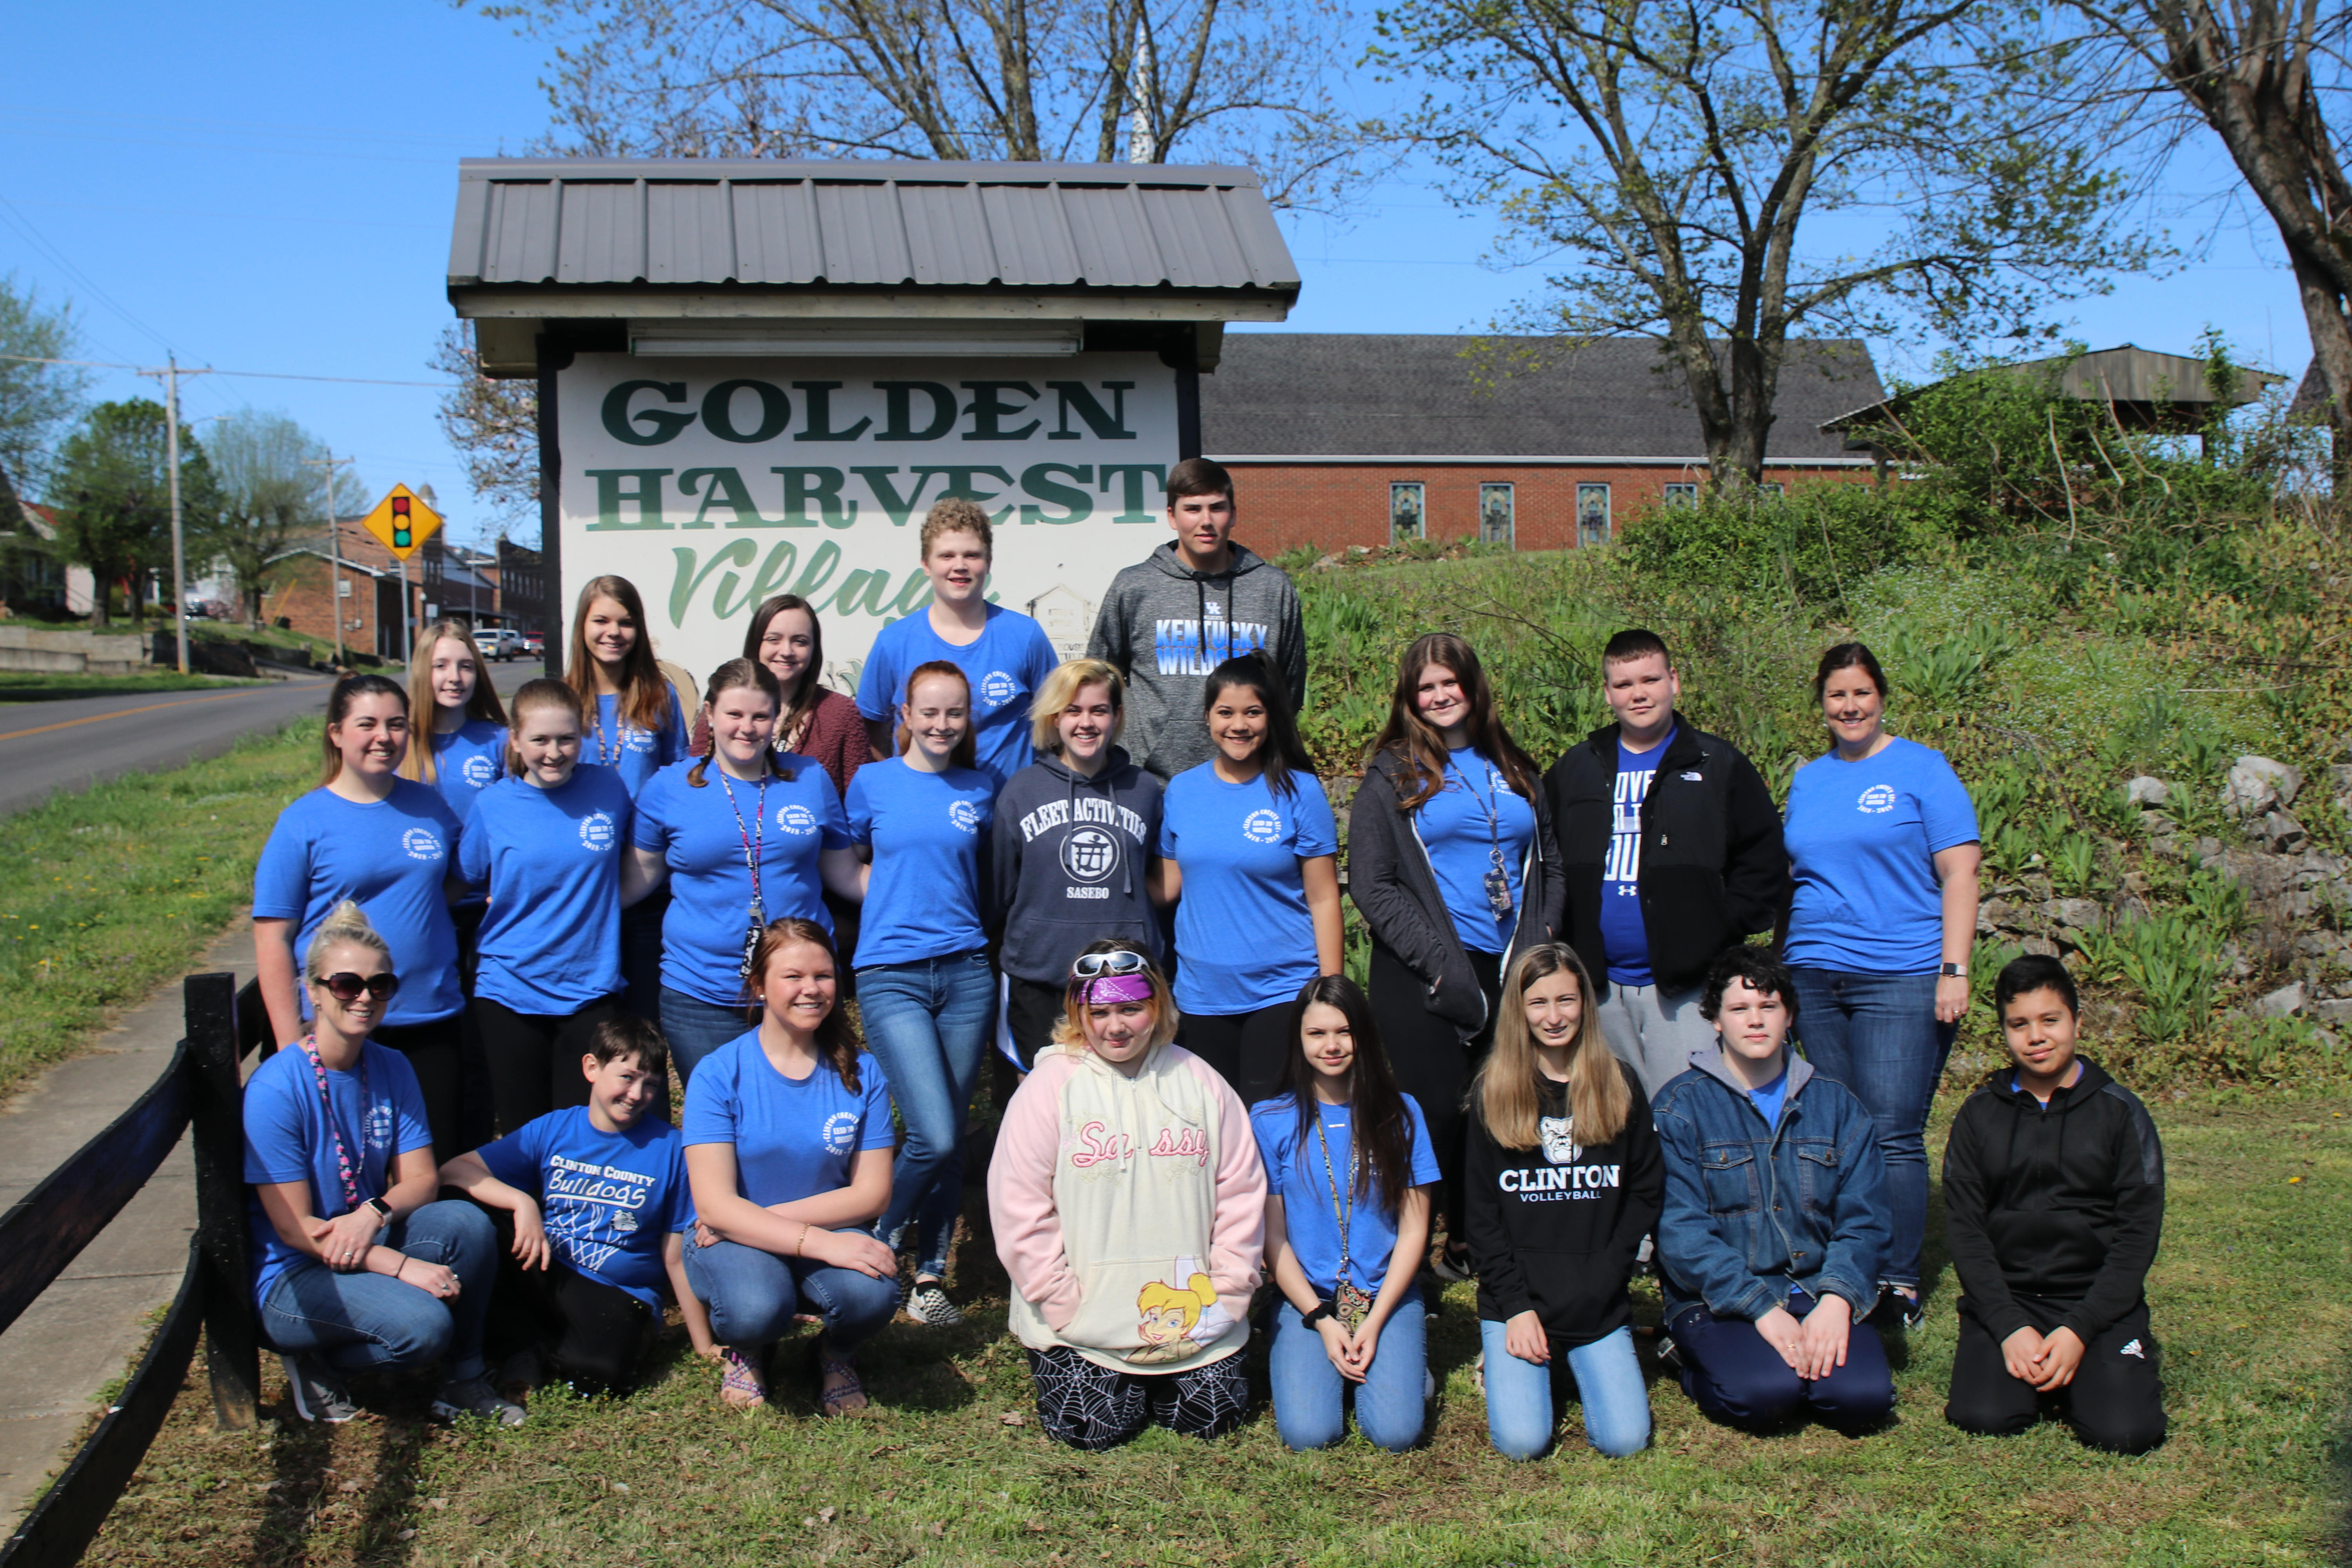 The Lead to Succeed students from Clinton County Area Technology Center recently completed a service-learning project at Golden Harvest Village.